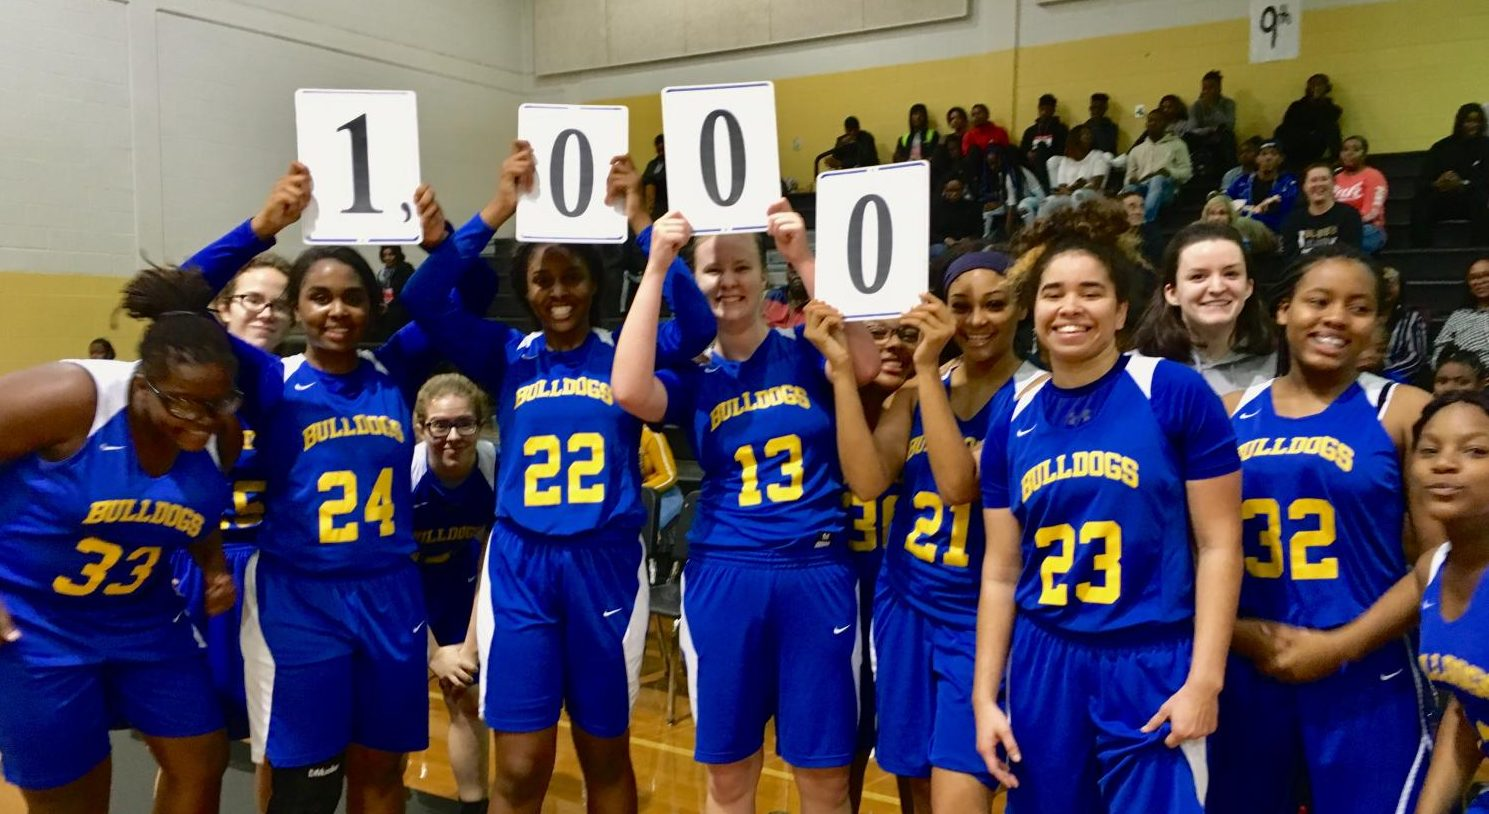 Trinity Edwards (#23) poses with her teammates after scoring her 1000th point.